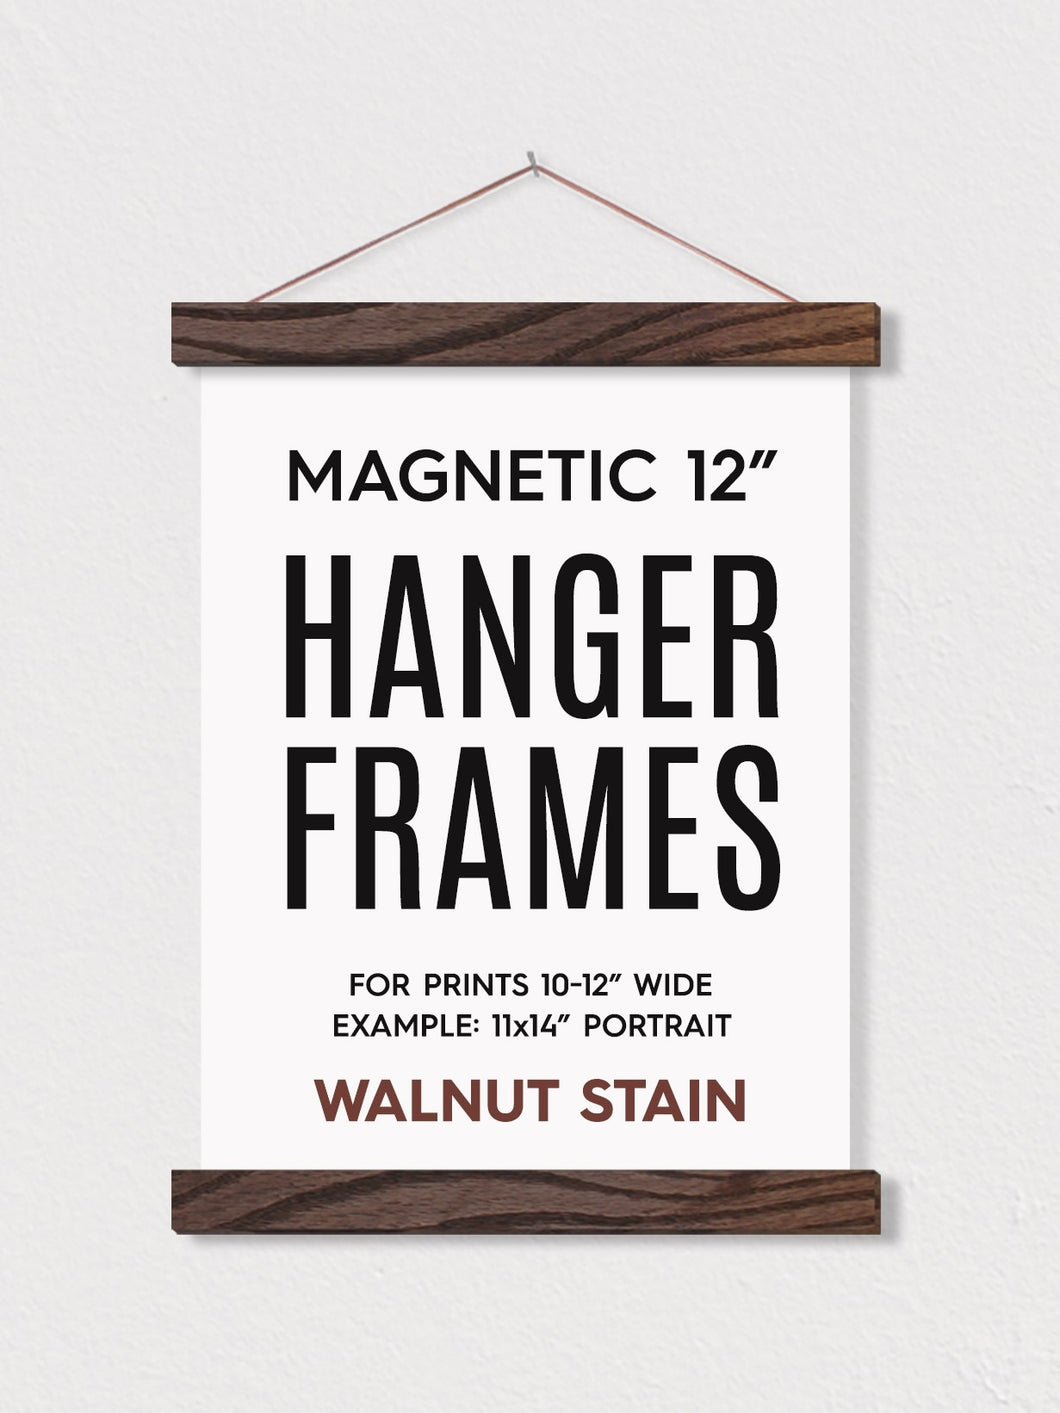 Magnetic Hanging Frames - Walnut